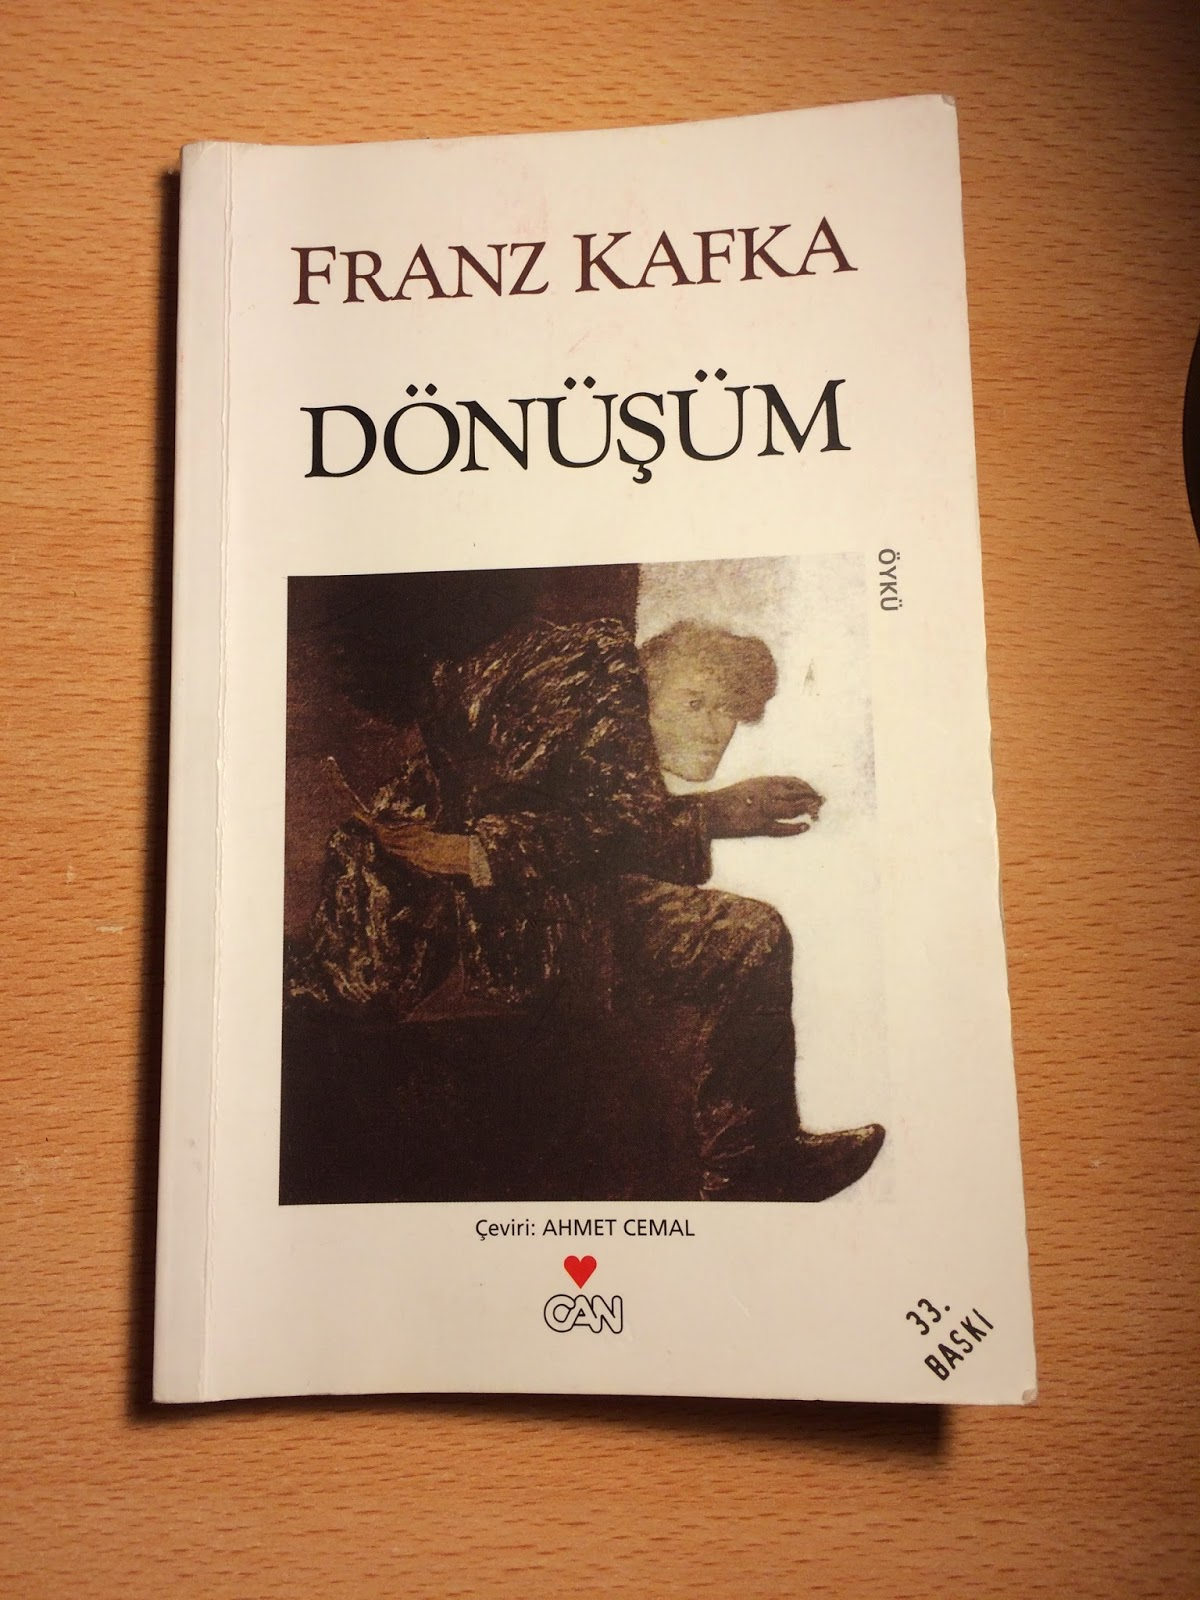 a life of frustration and confusion franz kafka Maybe kafka implies that k should have ended his life long ago and avoided the entire ordeal at all there's so many ways to read this novel, its bittersweet and maddening permalink.